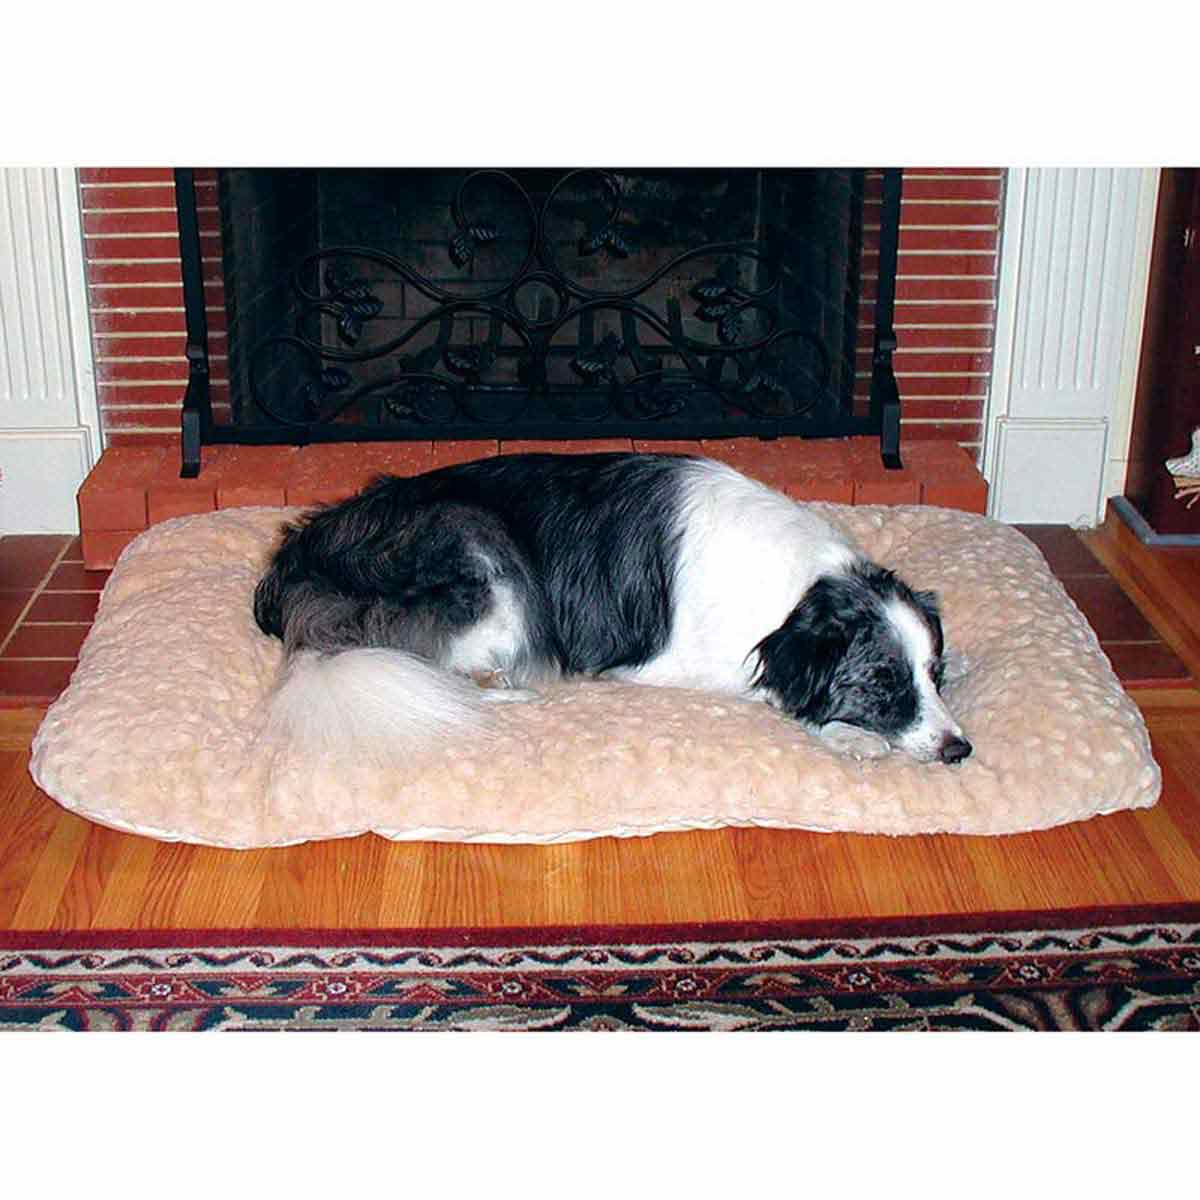 Snoozzy Tan Blush Comforter Dog Bed - 41 inches by 26 inches Natural